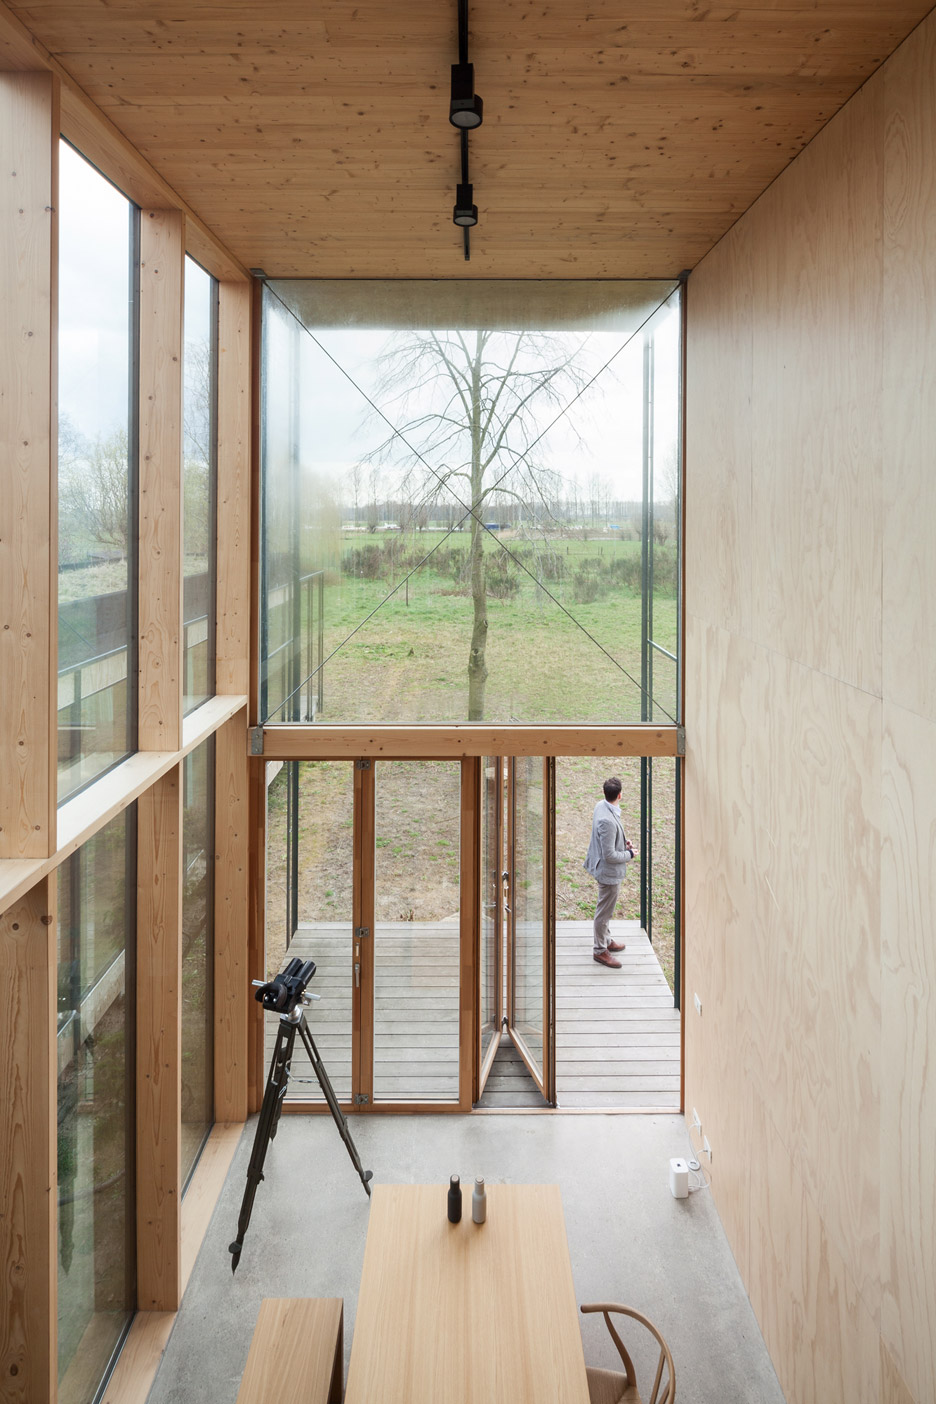 weekend-house-wachtebeke-gafpa_dezeen_936_8